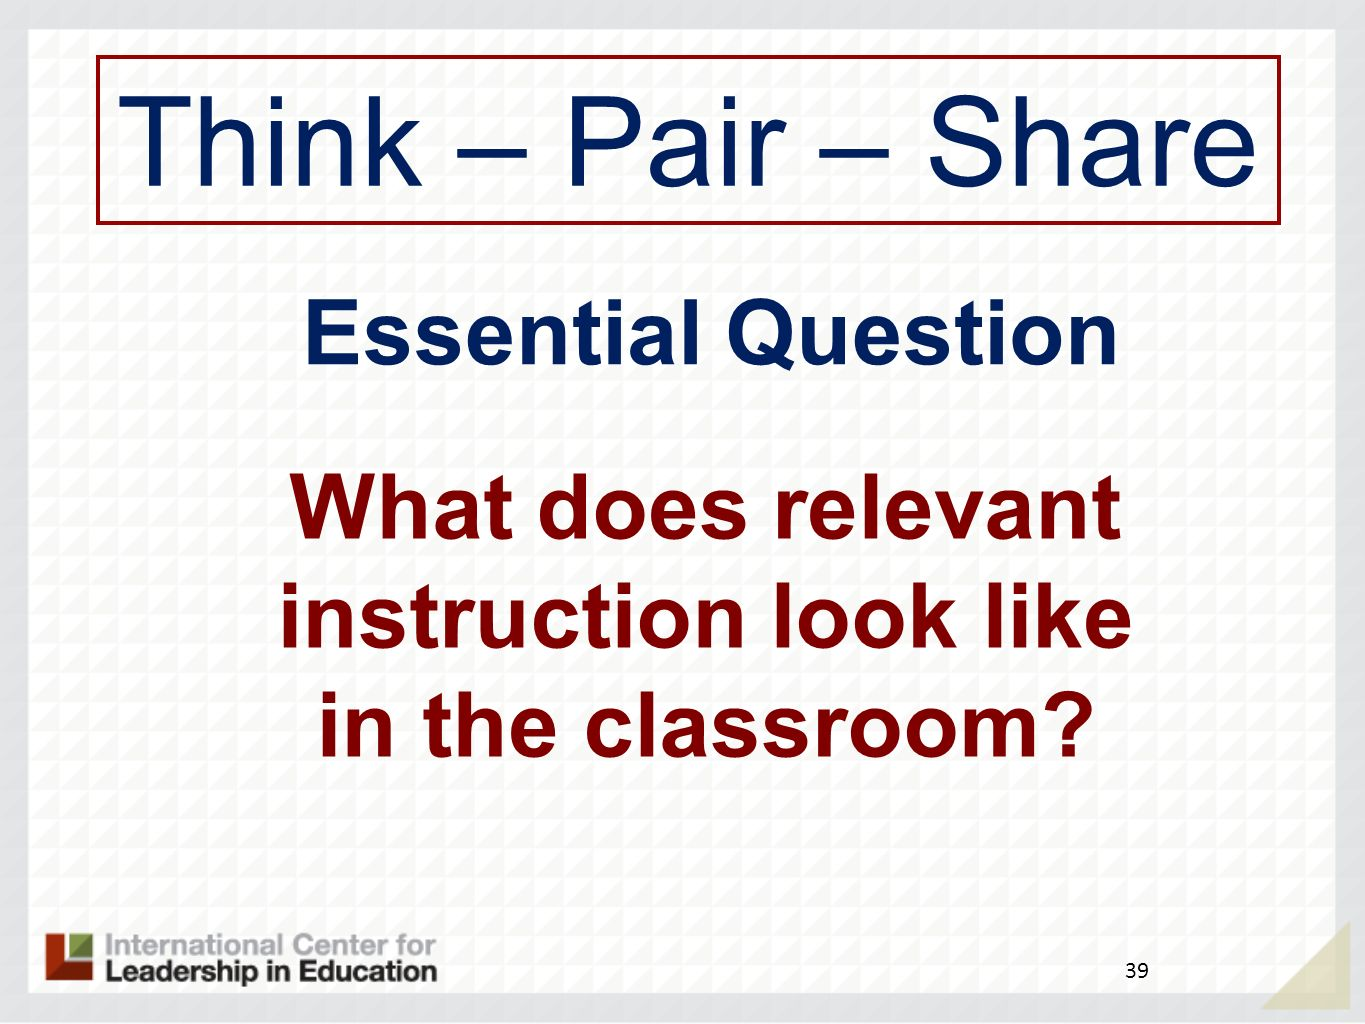 What does relevant instruction look like in the classroom